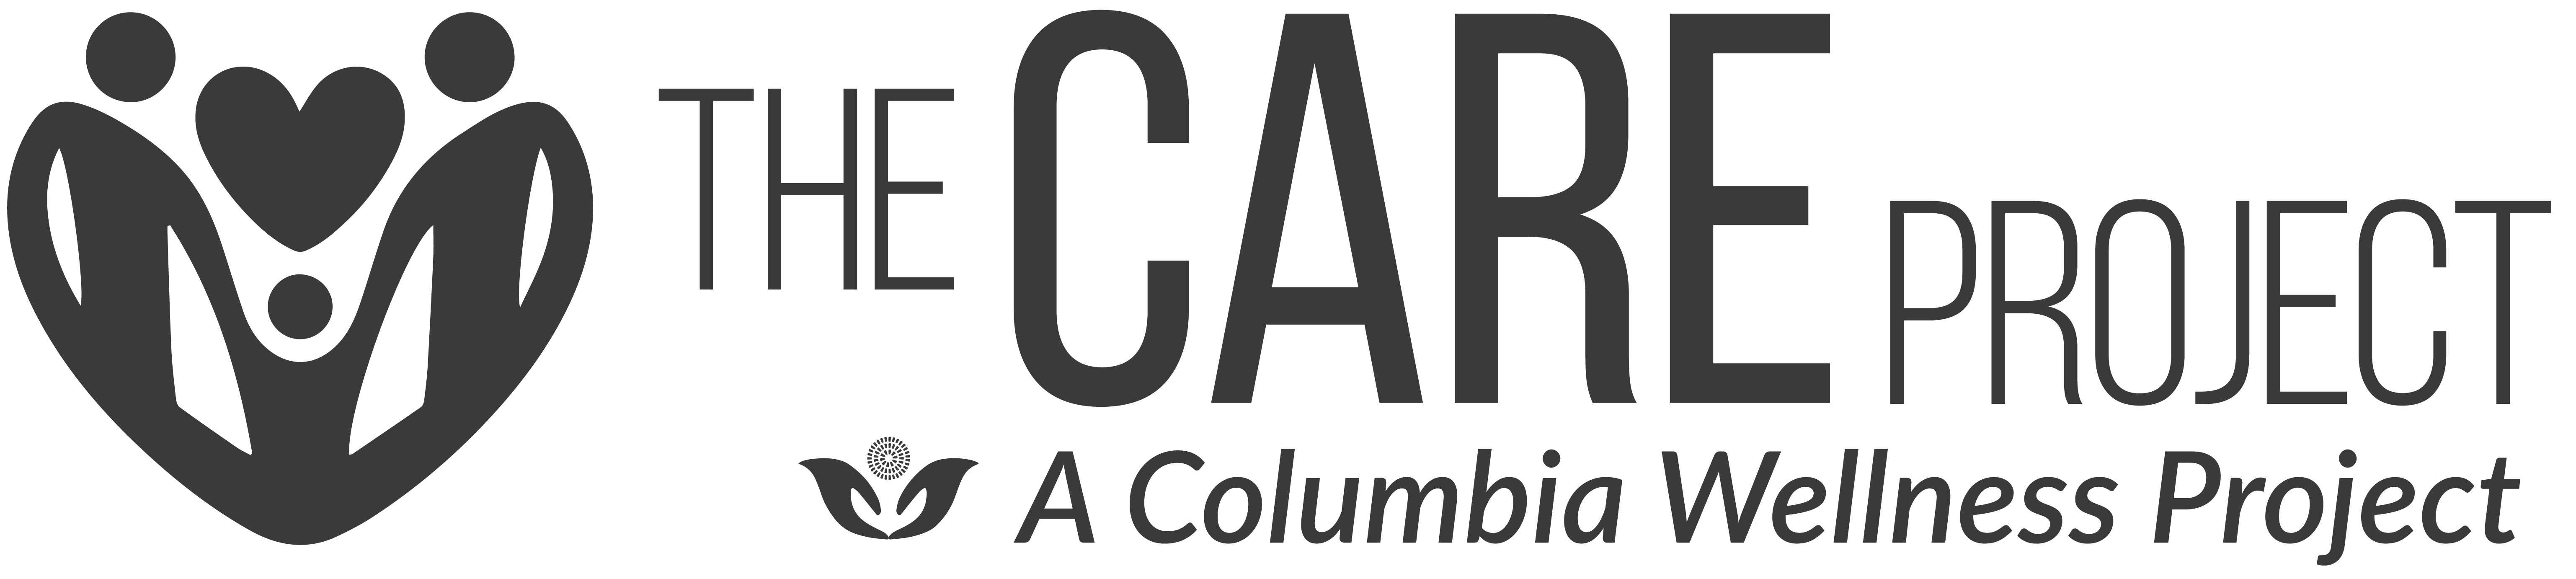 The Care App Project